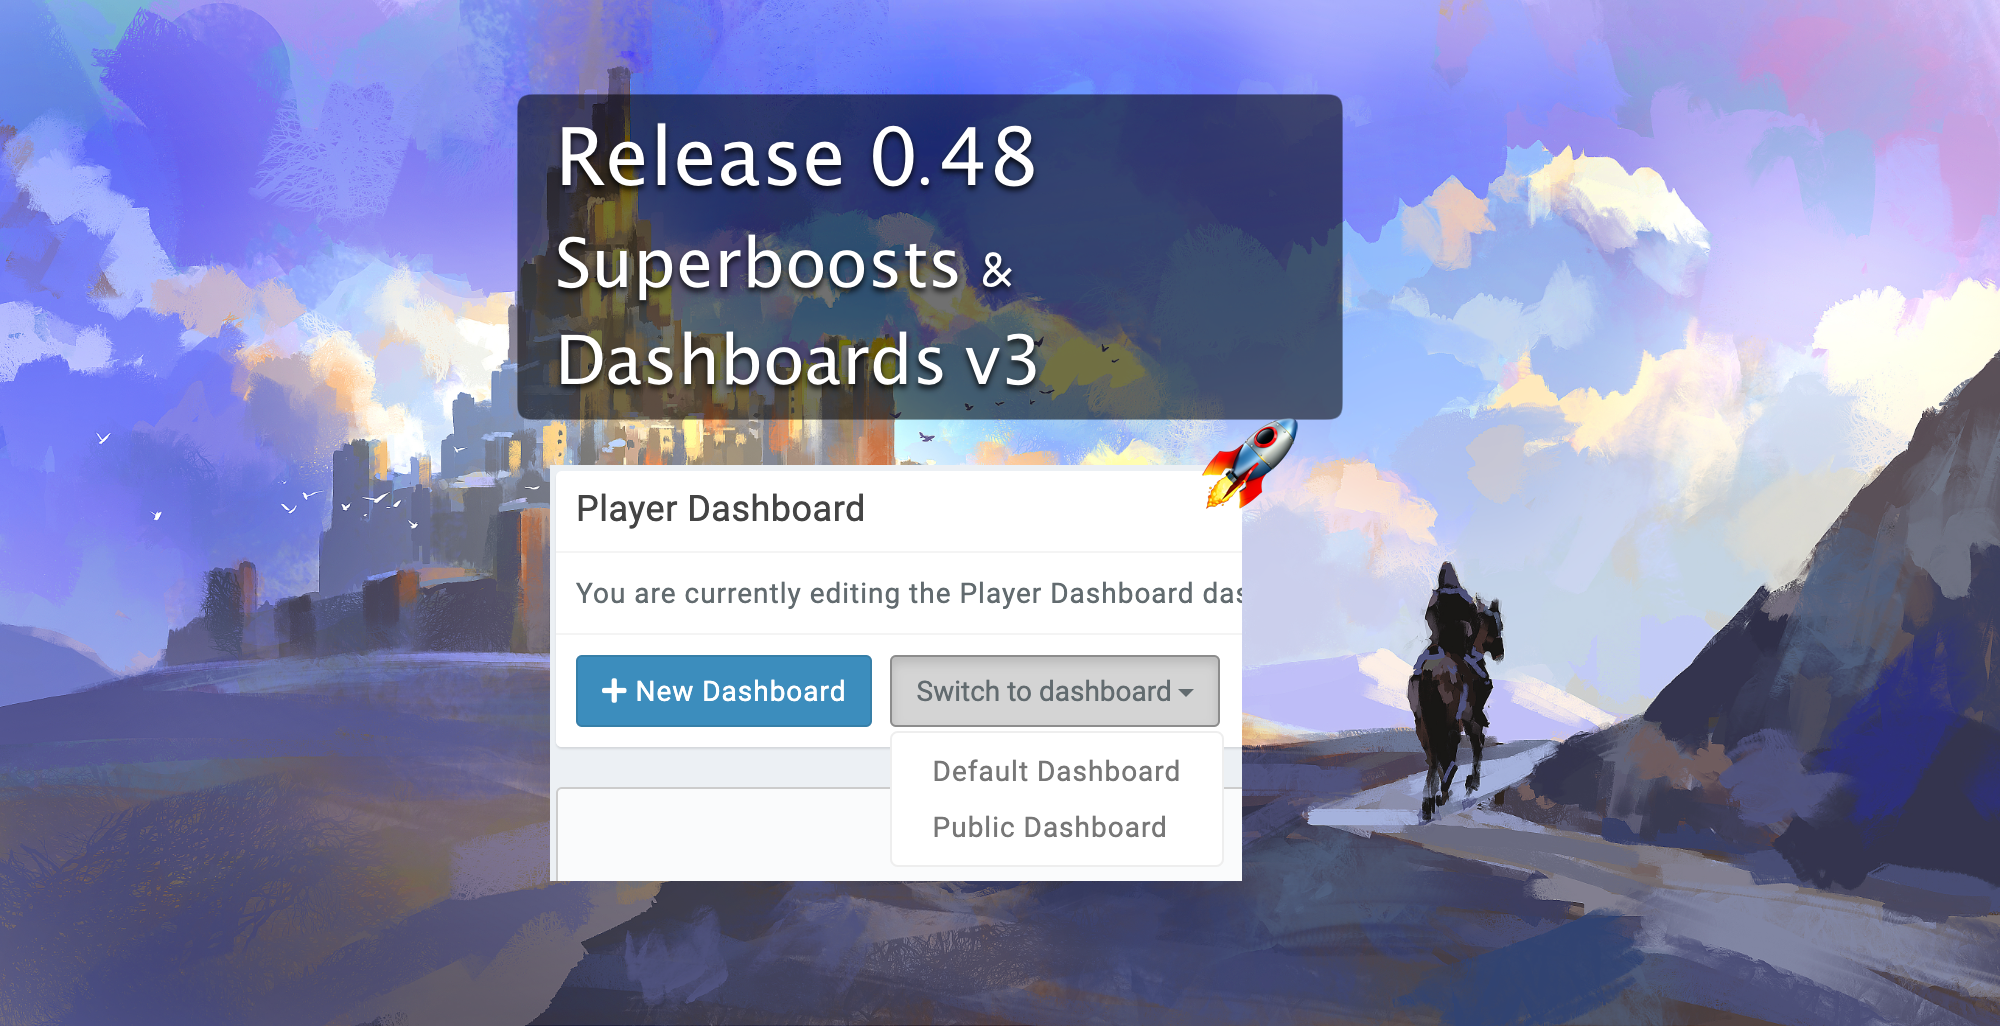 Release 0.48